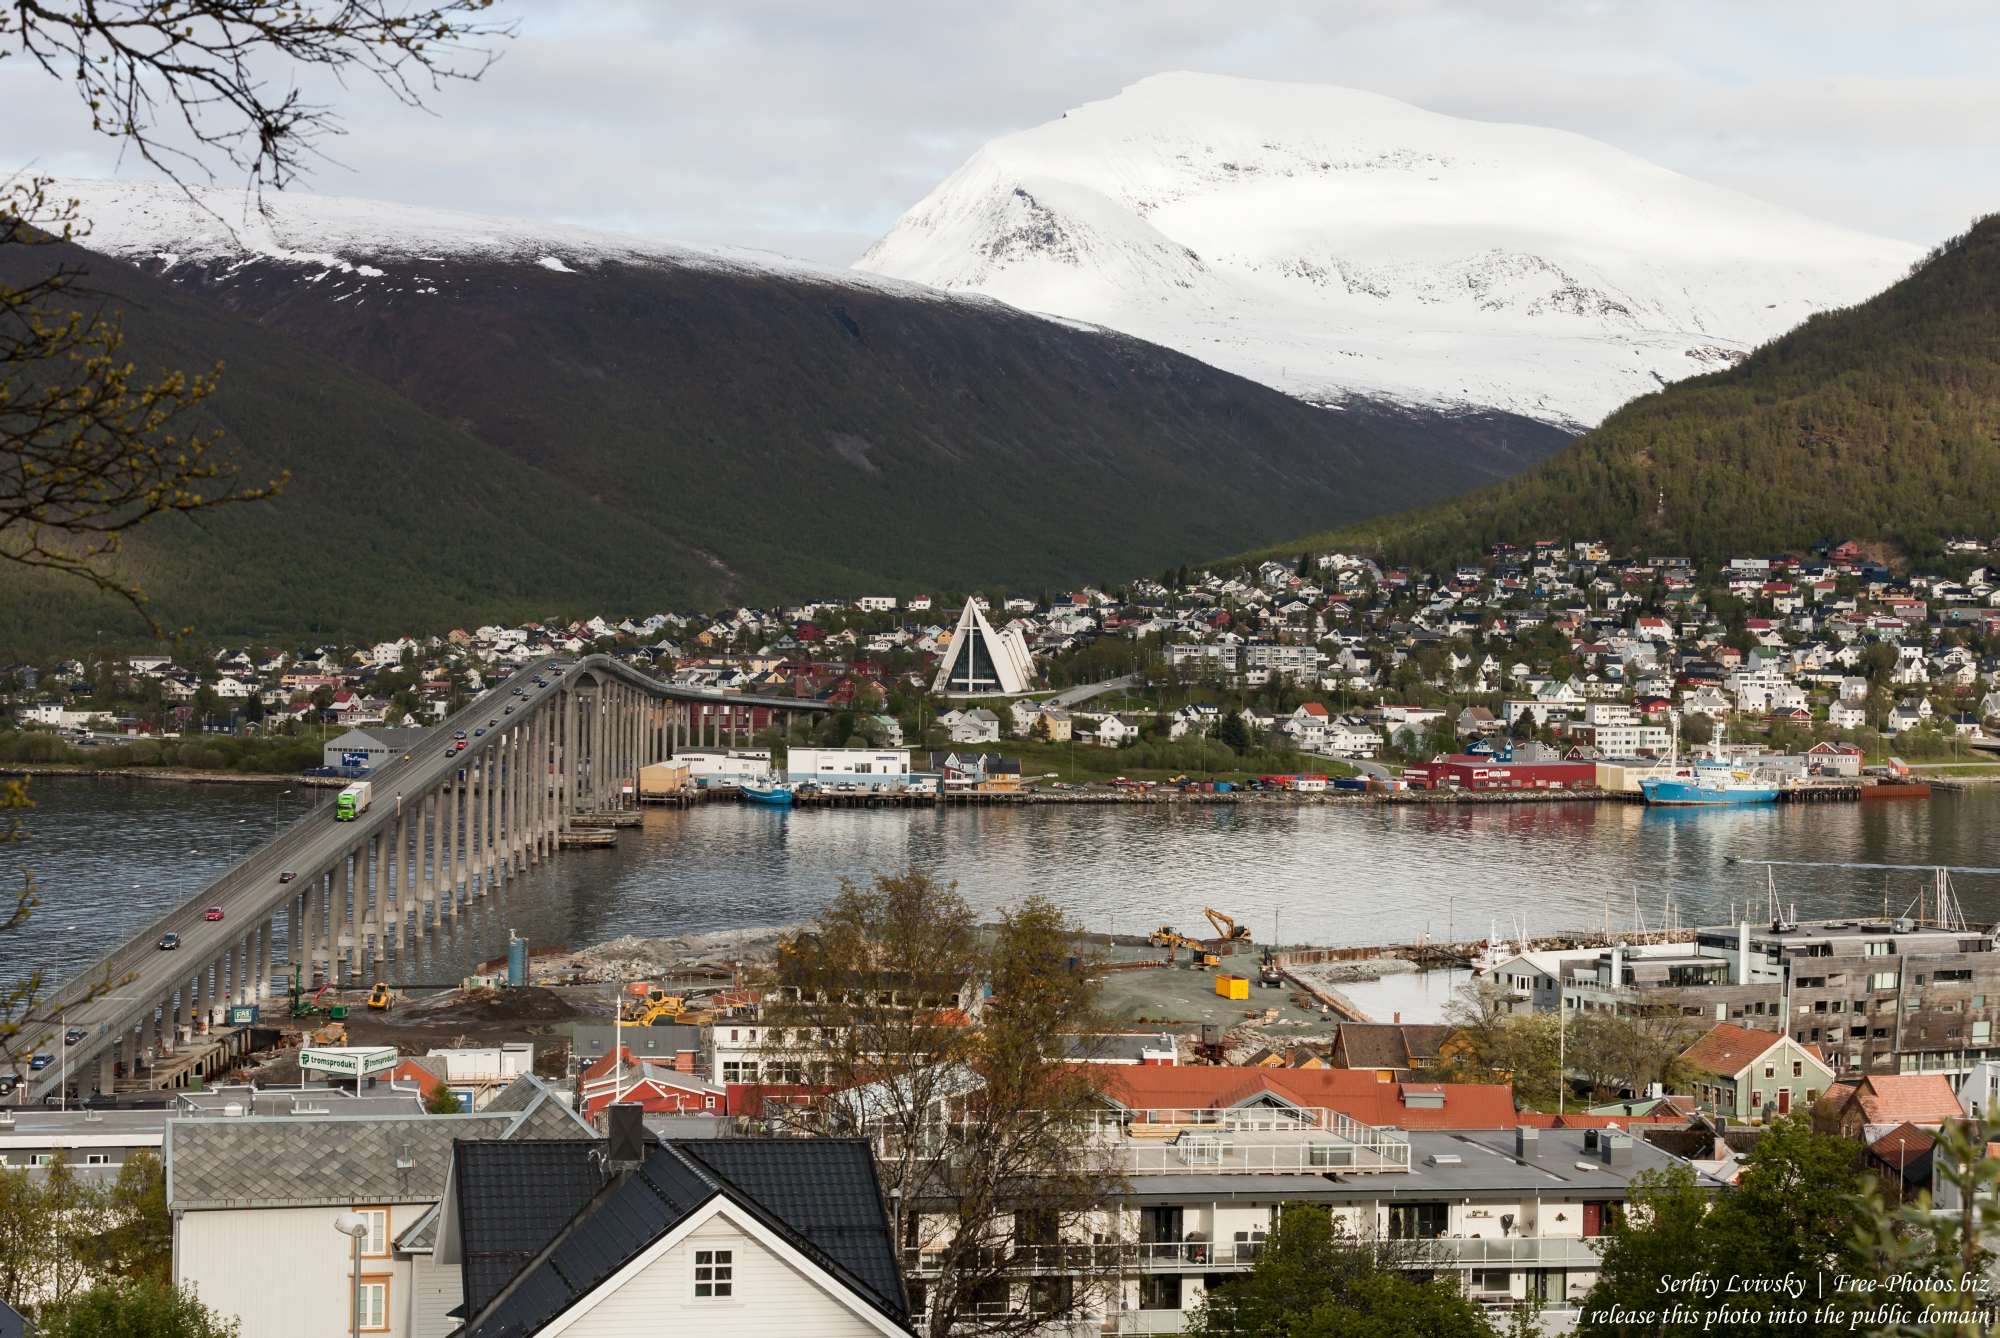 tromso_norway_photographed_in_june_2018_by_serhiy_lvivsky_59